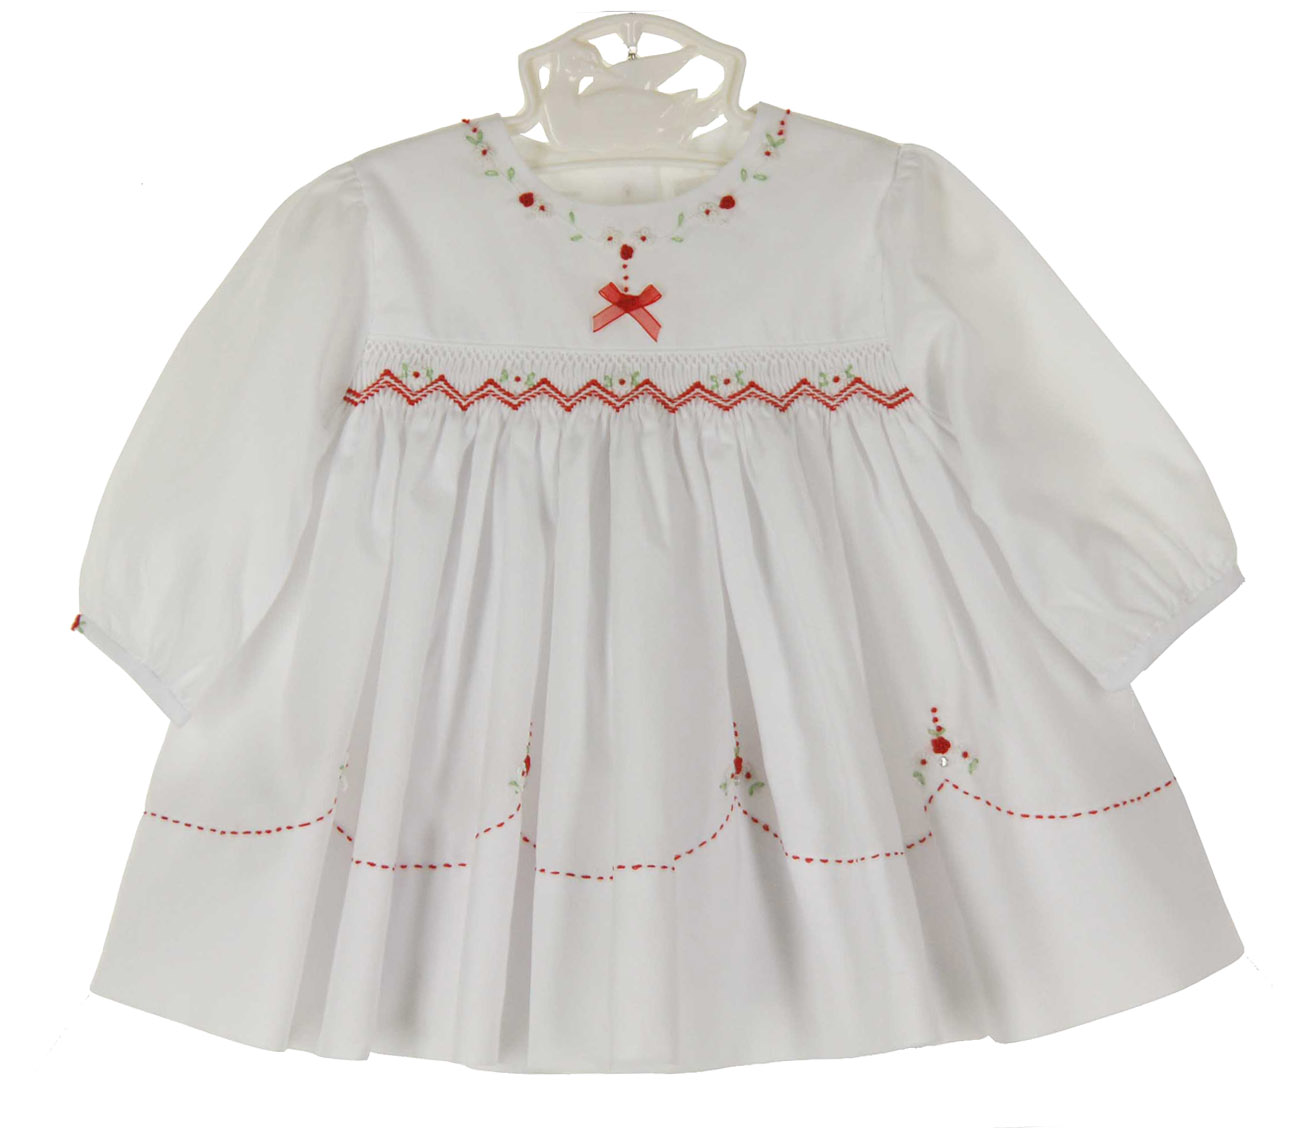 f37210bc9a5d NEW Sarah Louise White Smocked Dress with Red Embroidered Flowers